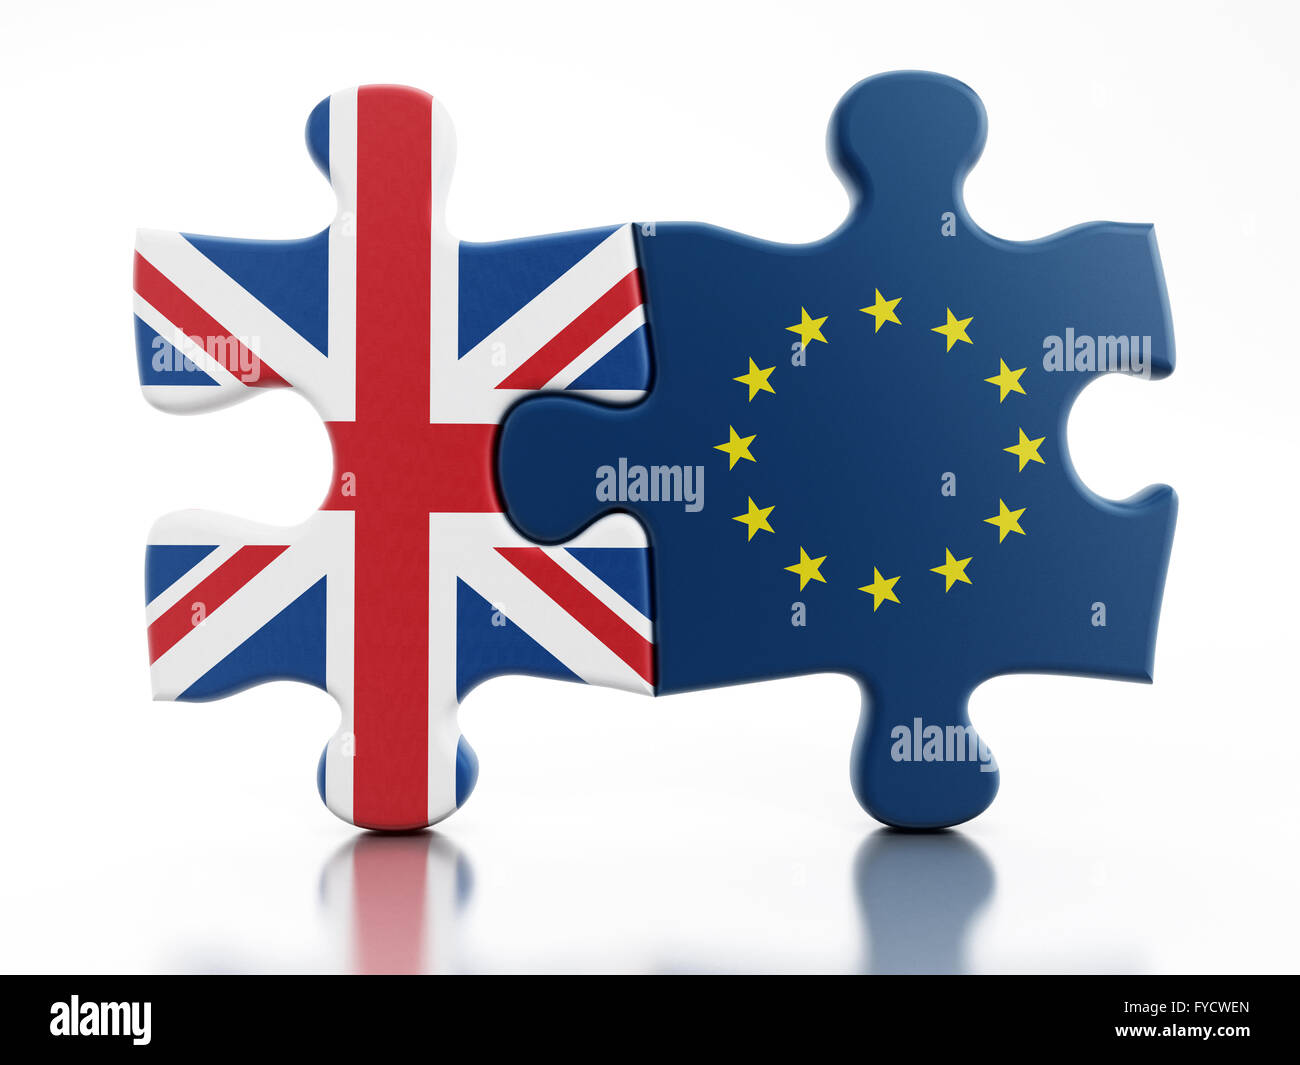 Britain and European Union flags on attached puzzle parts - Stock Image